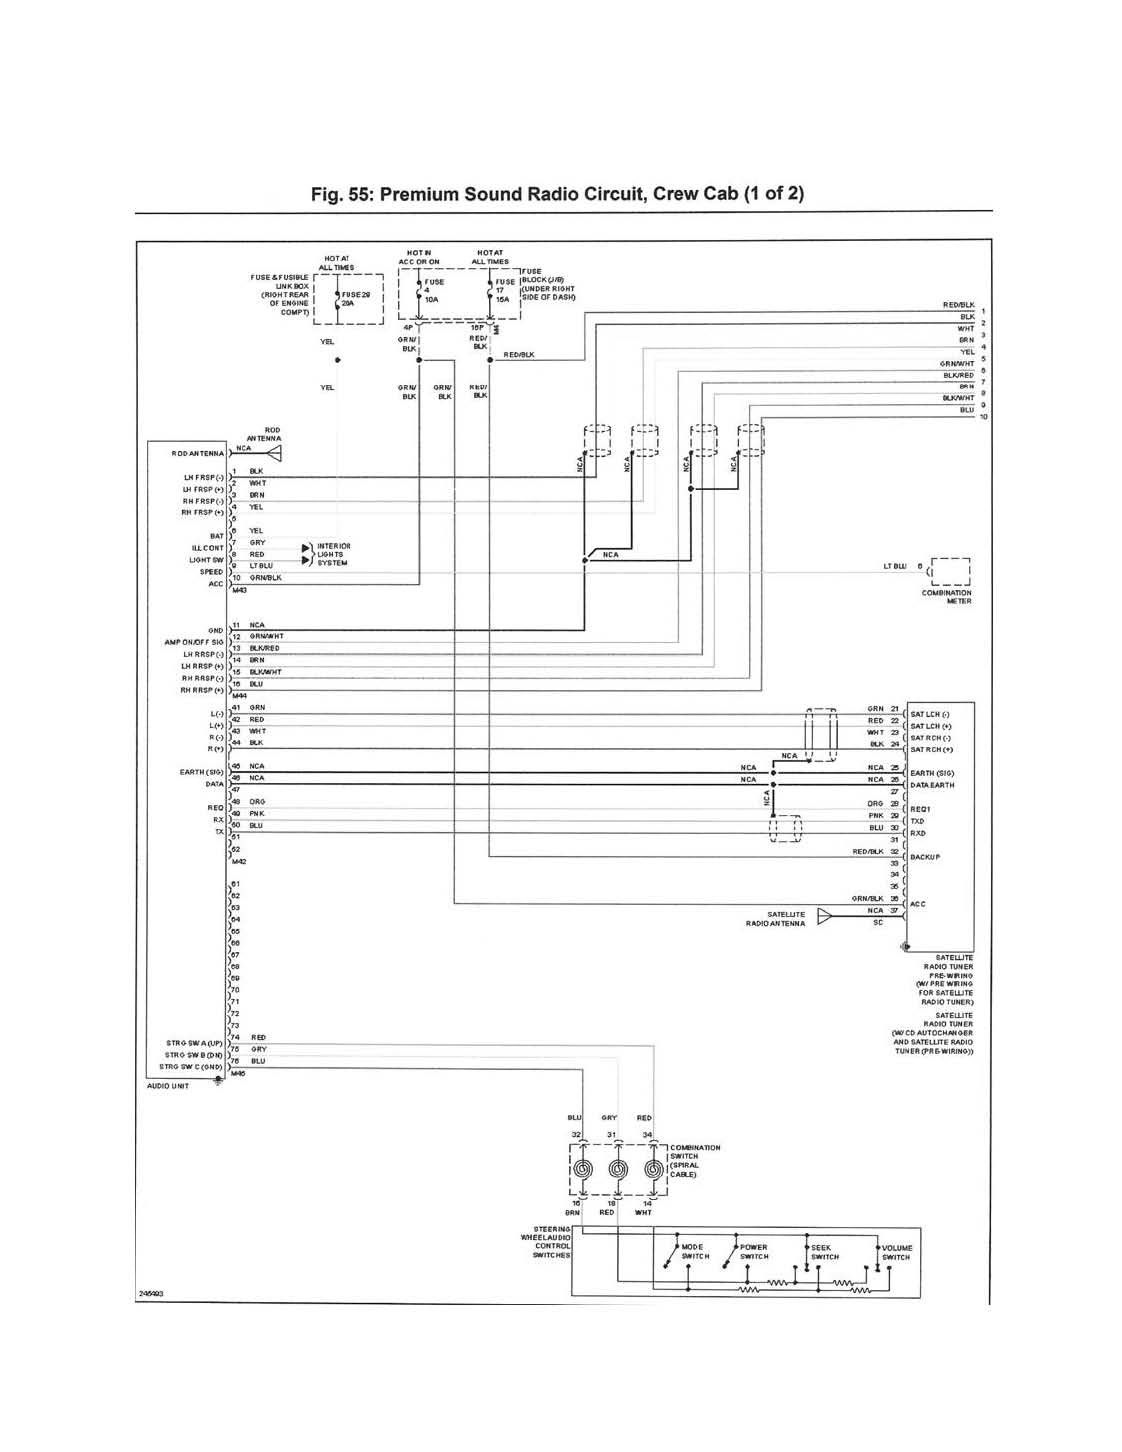 rockford wiring diagram rockford image wiring diagram rockford fosgate p4004 wiring diagram electric wire diagram on rockford wiring diagram